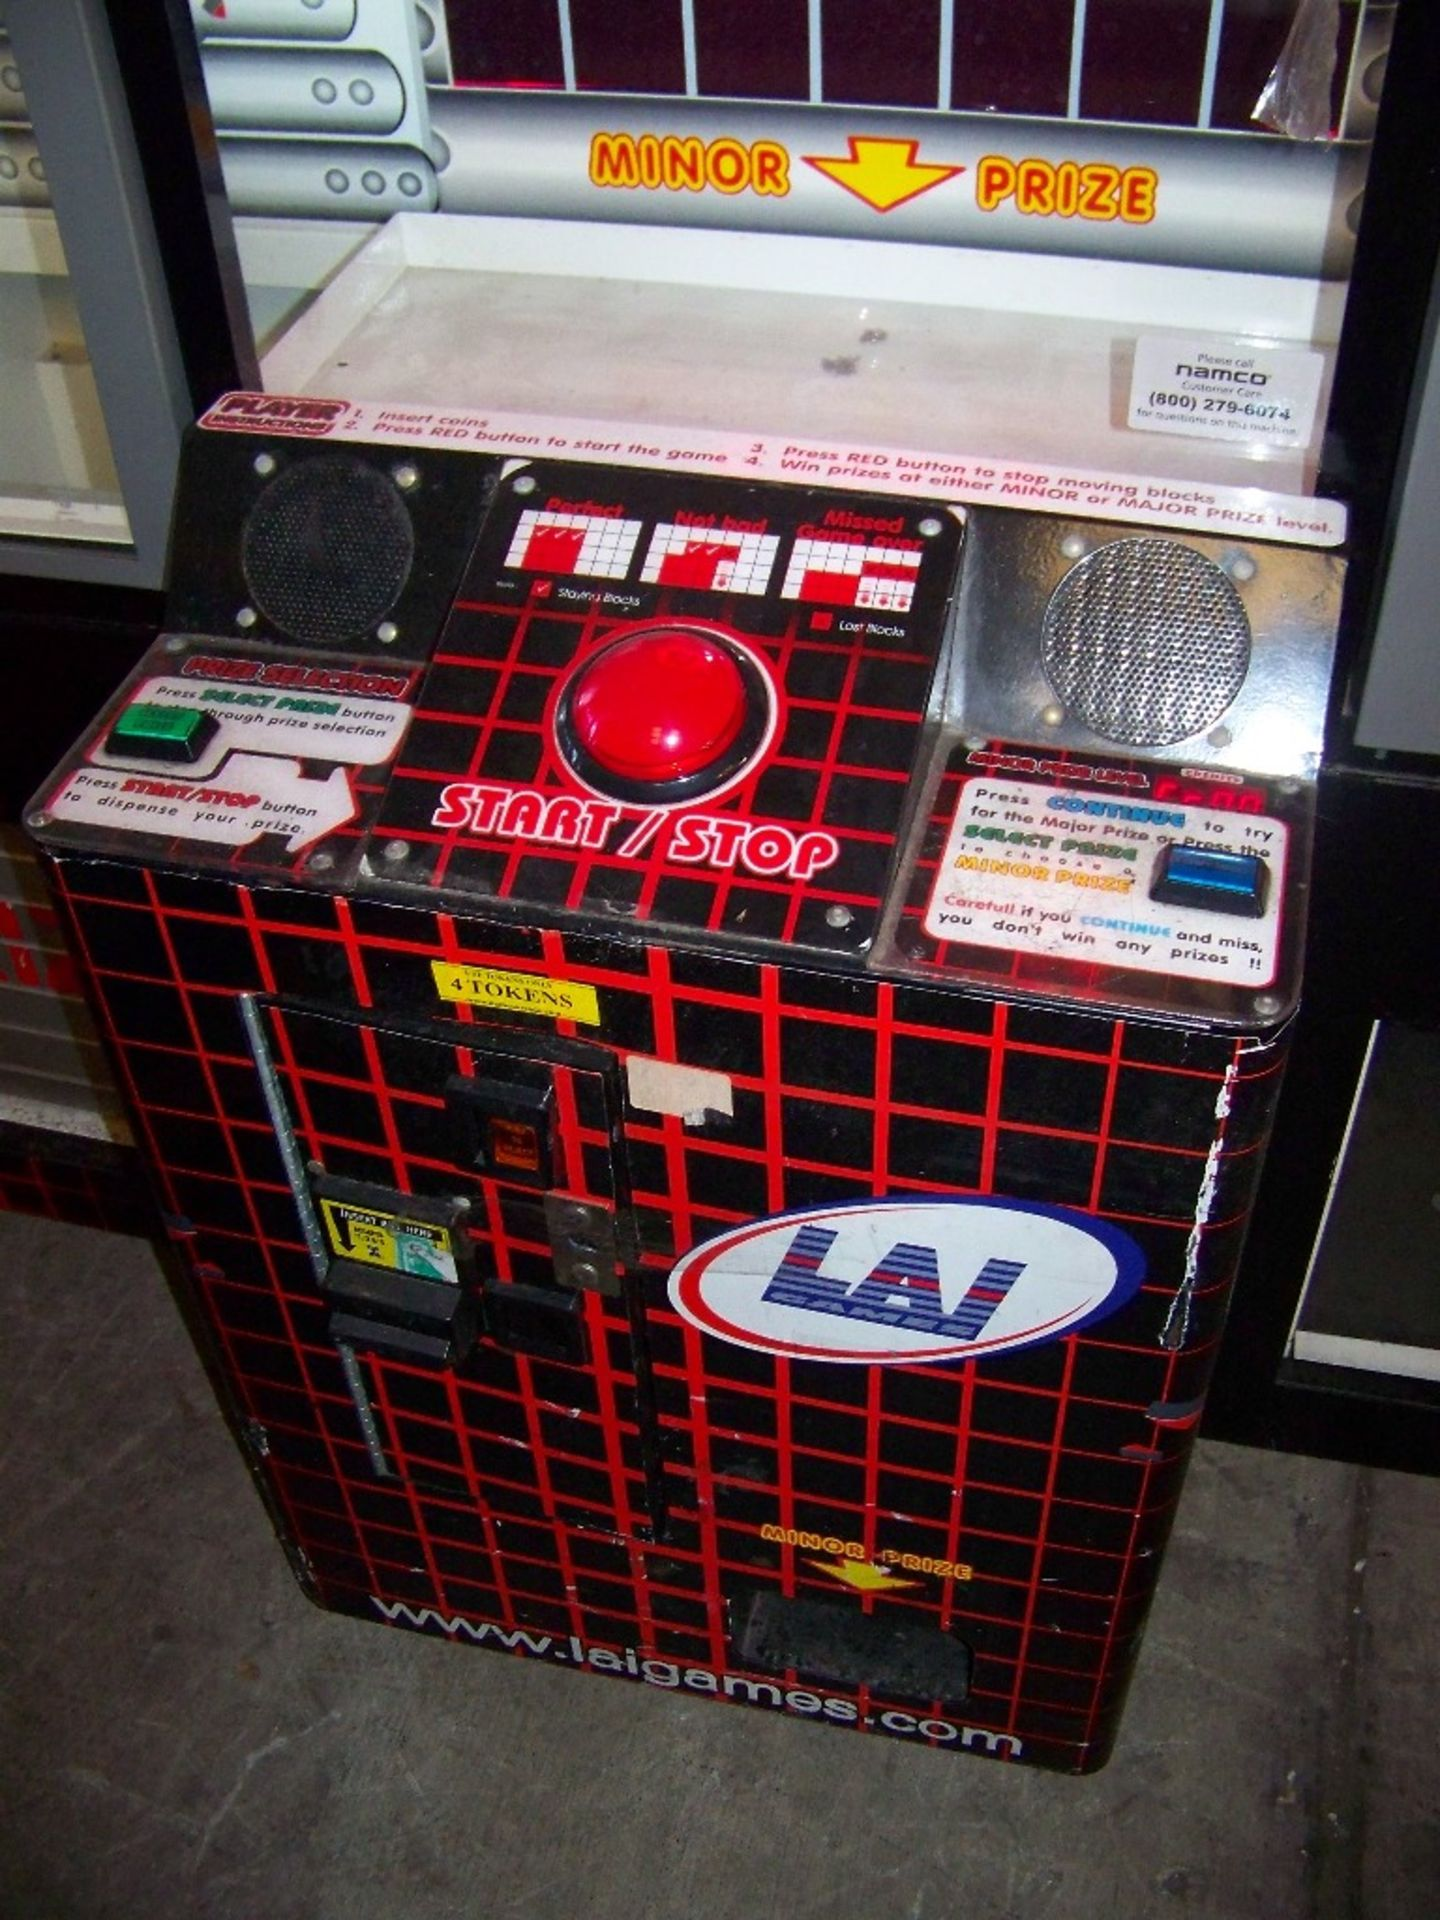 STACKER GIANT PRIZE REDEMPTION GAME LAI GAMES - Image 4 of 4